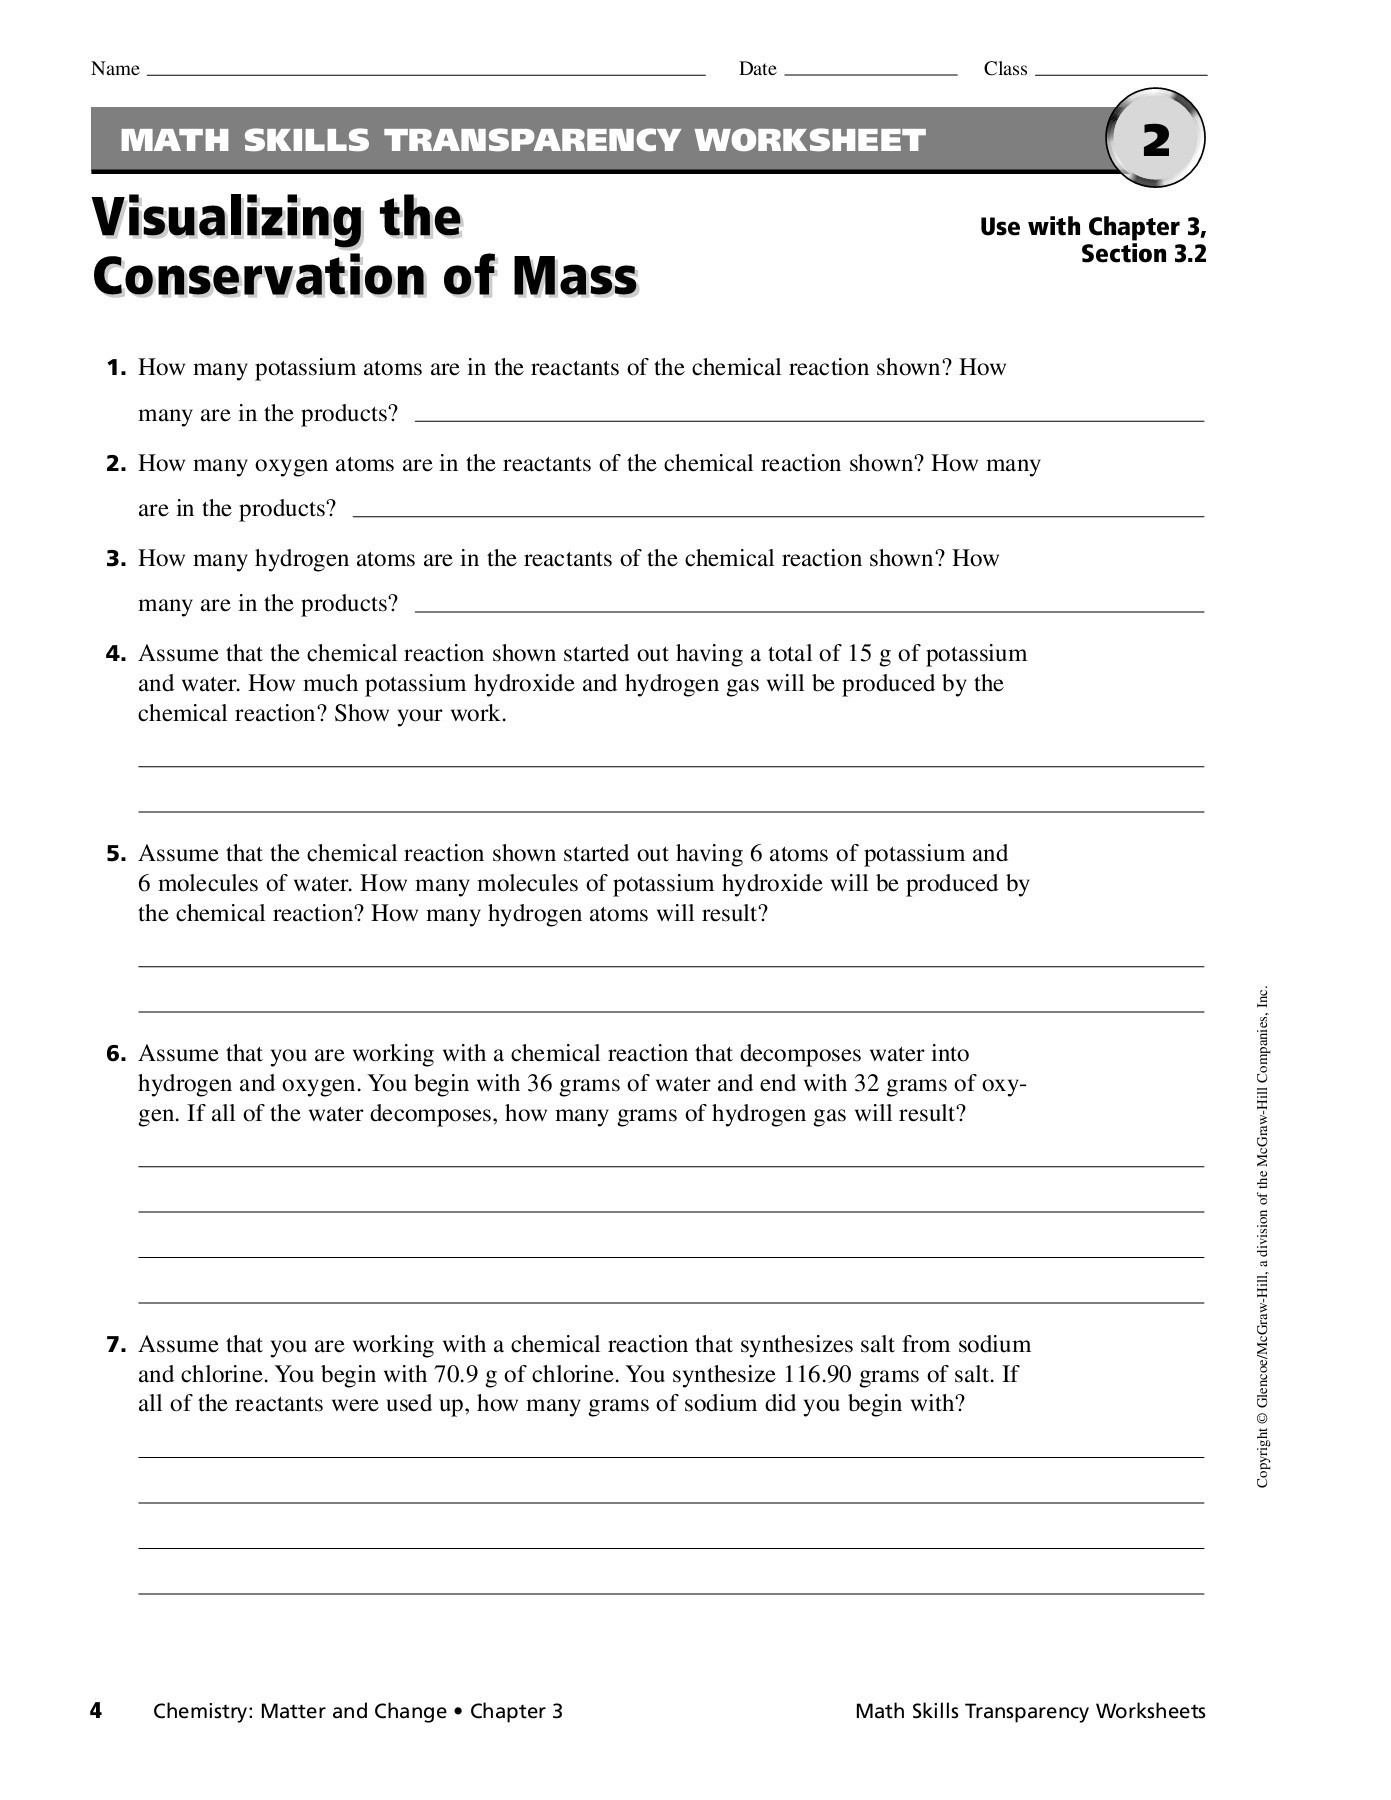 Conservation Of Mass Worksheet Math Skills Transparency Master Visualizing the Pages 1